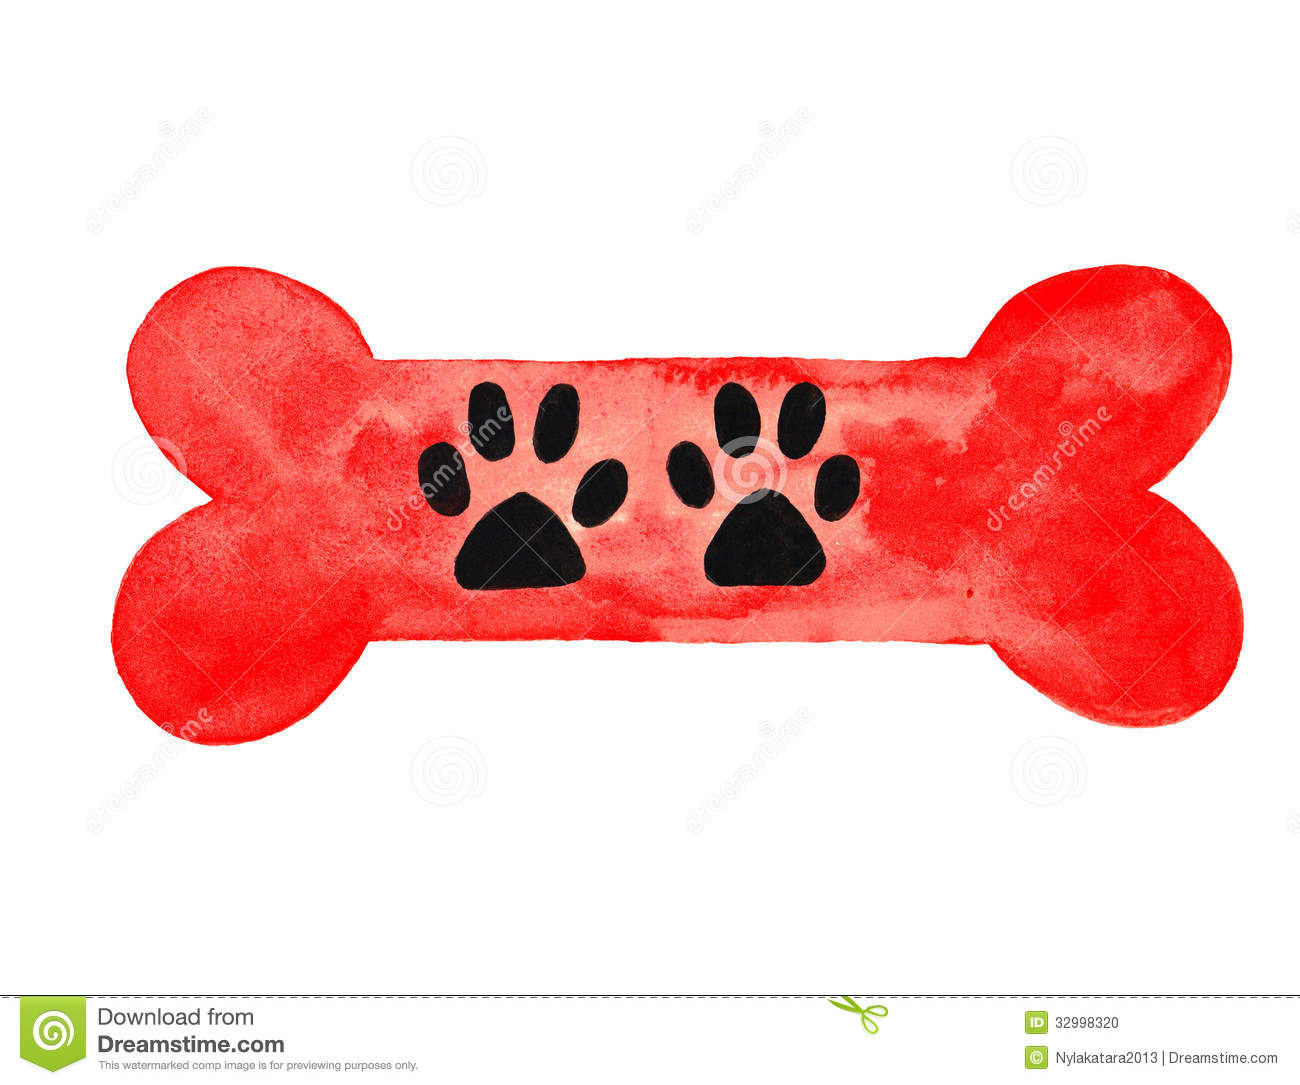 Red large dog bone with black dog paw prints watercolor painting.